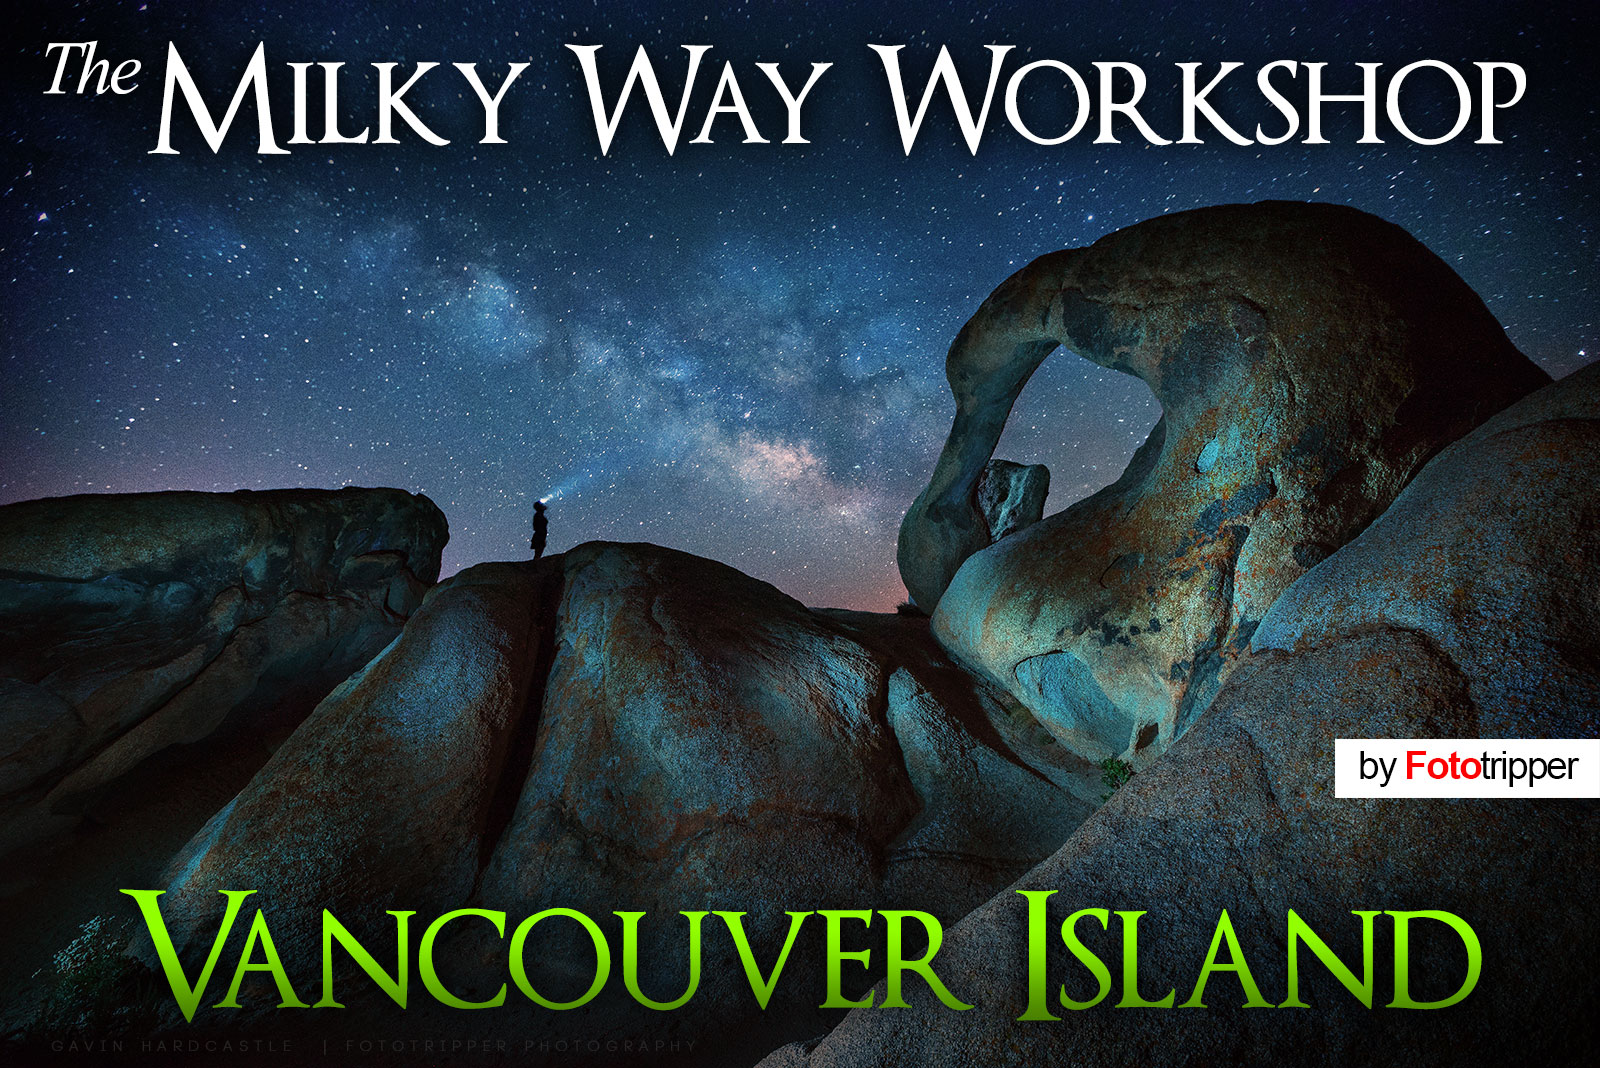 Vancovuer Island Astro Photography Workshop